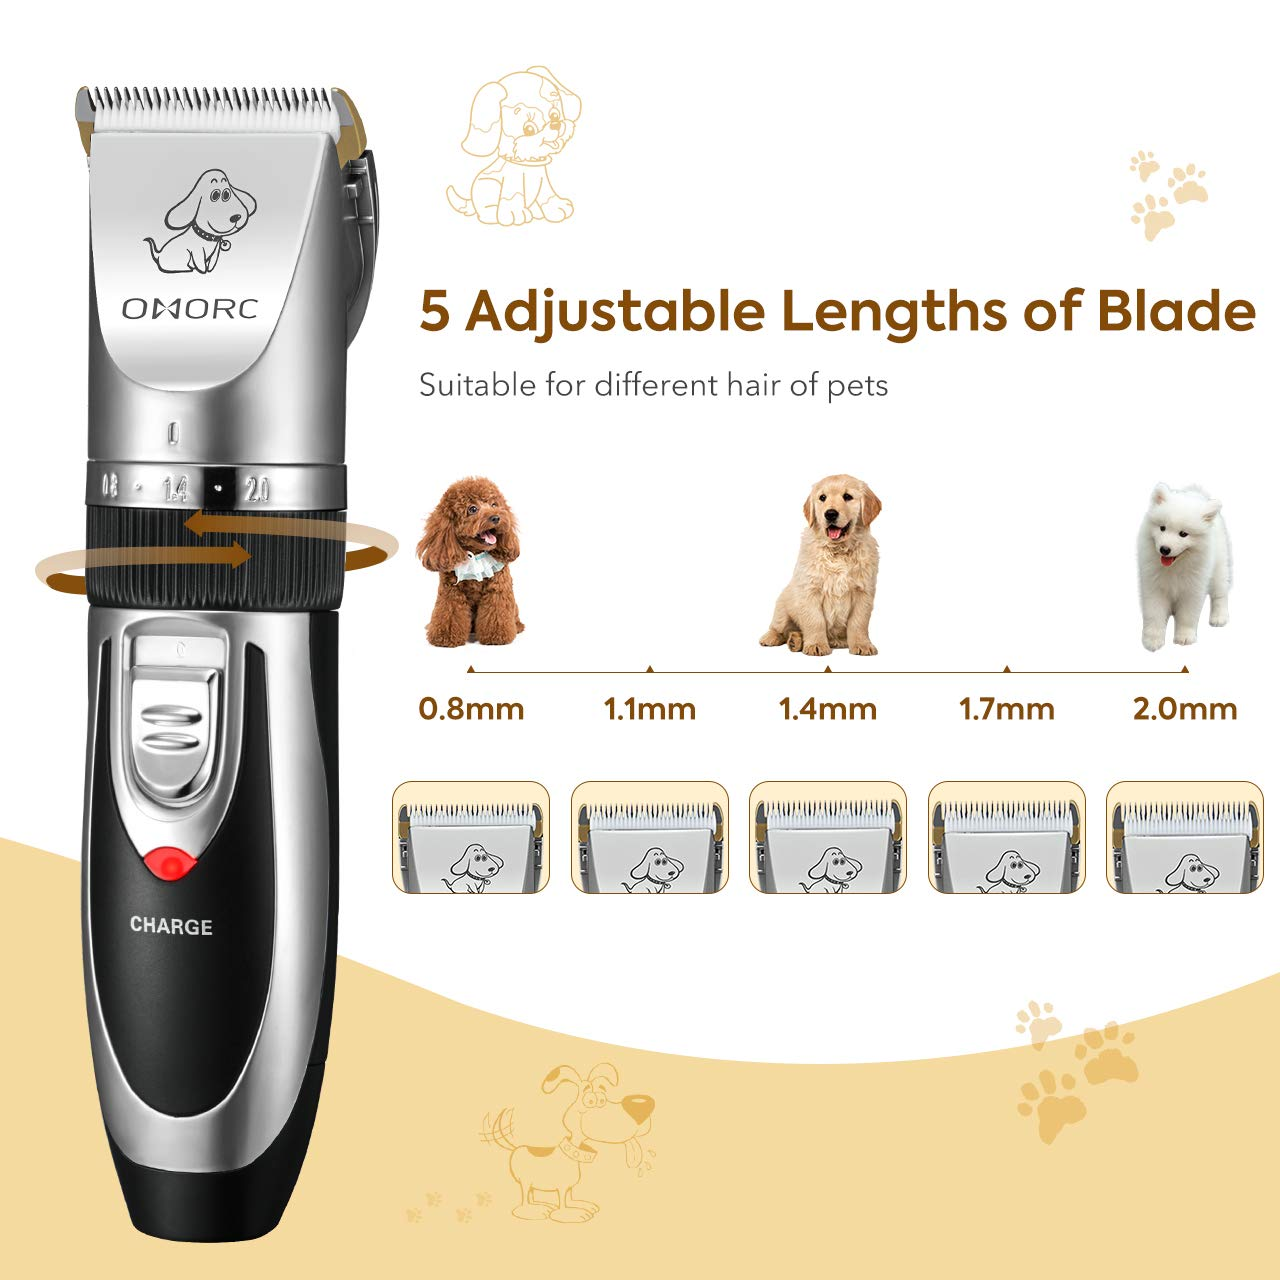 OMORC Dog Clippers Cordless Adjustable Pet Clippers Dog Hair Trimmer Rechargeable Cat Shaver Pet Grooming Professional Low Noise Dog Grooming kit with 8 Kinds Tools by OMORC (Image #6)